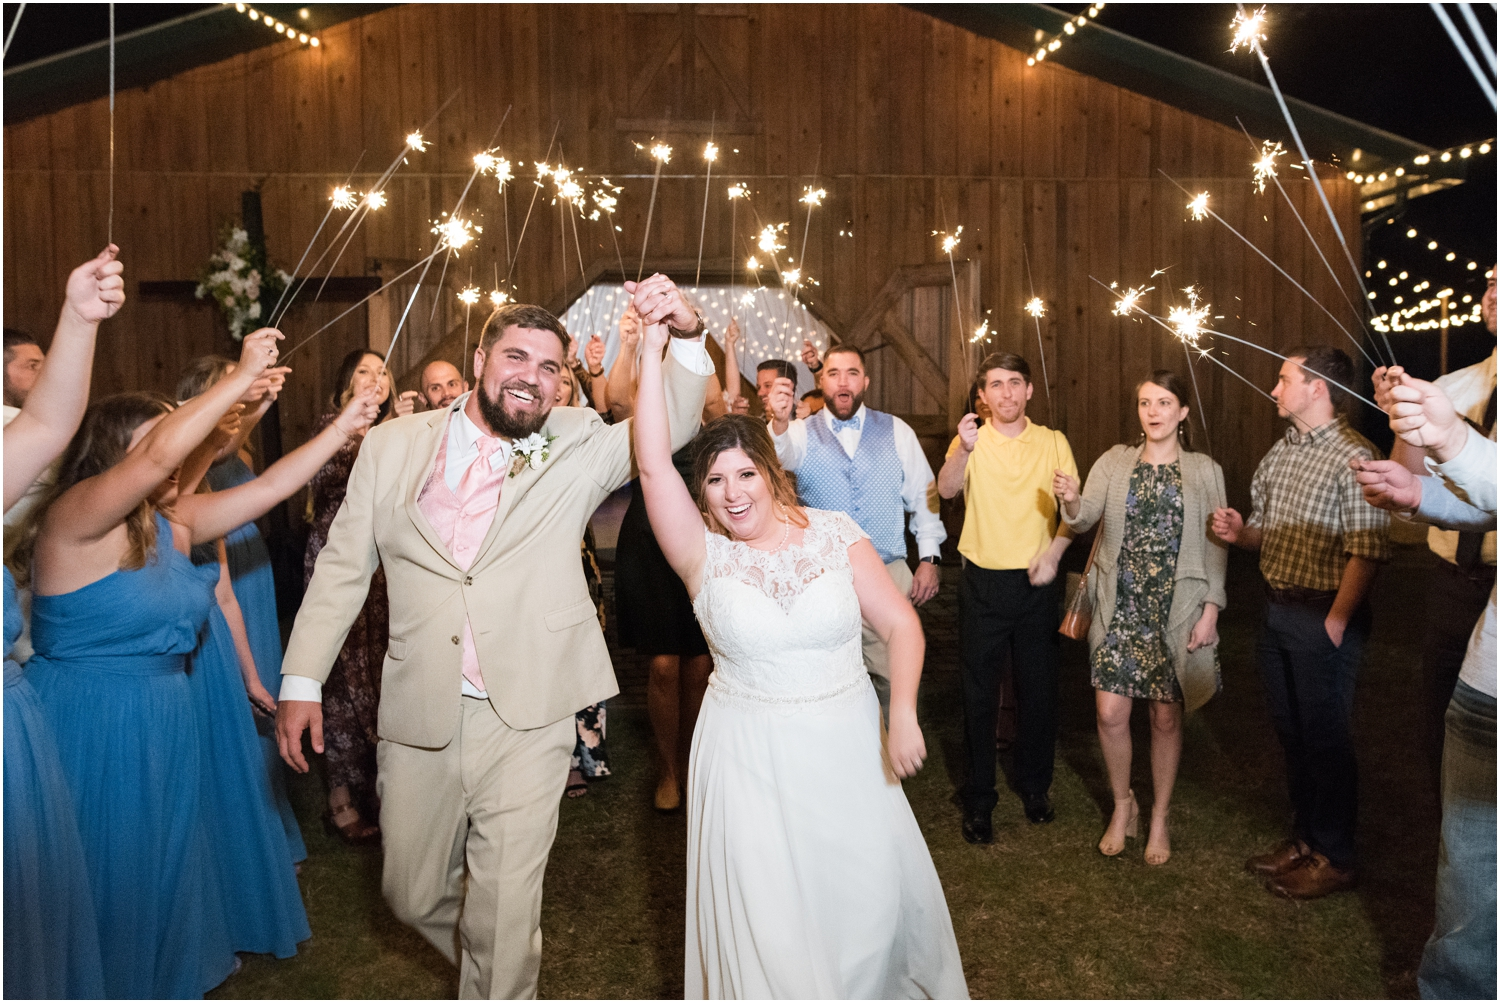 Sowell Farms Milton Florida Rustic Woodsy Barn Wedding Photographer reception barn  sparkler exit